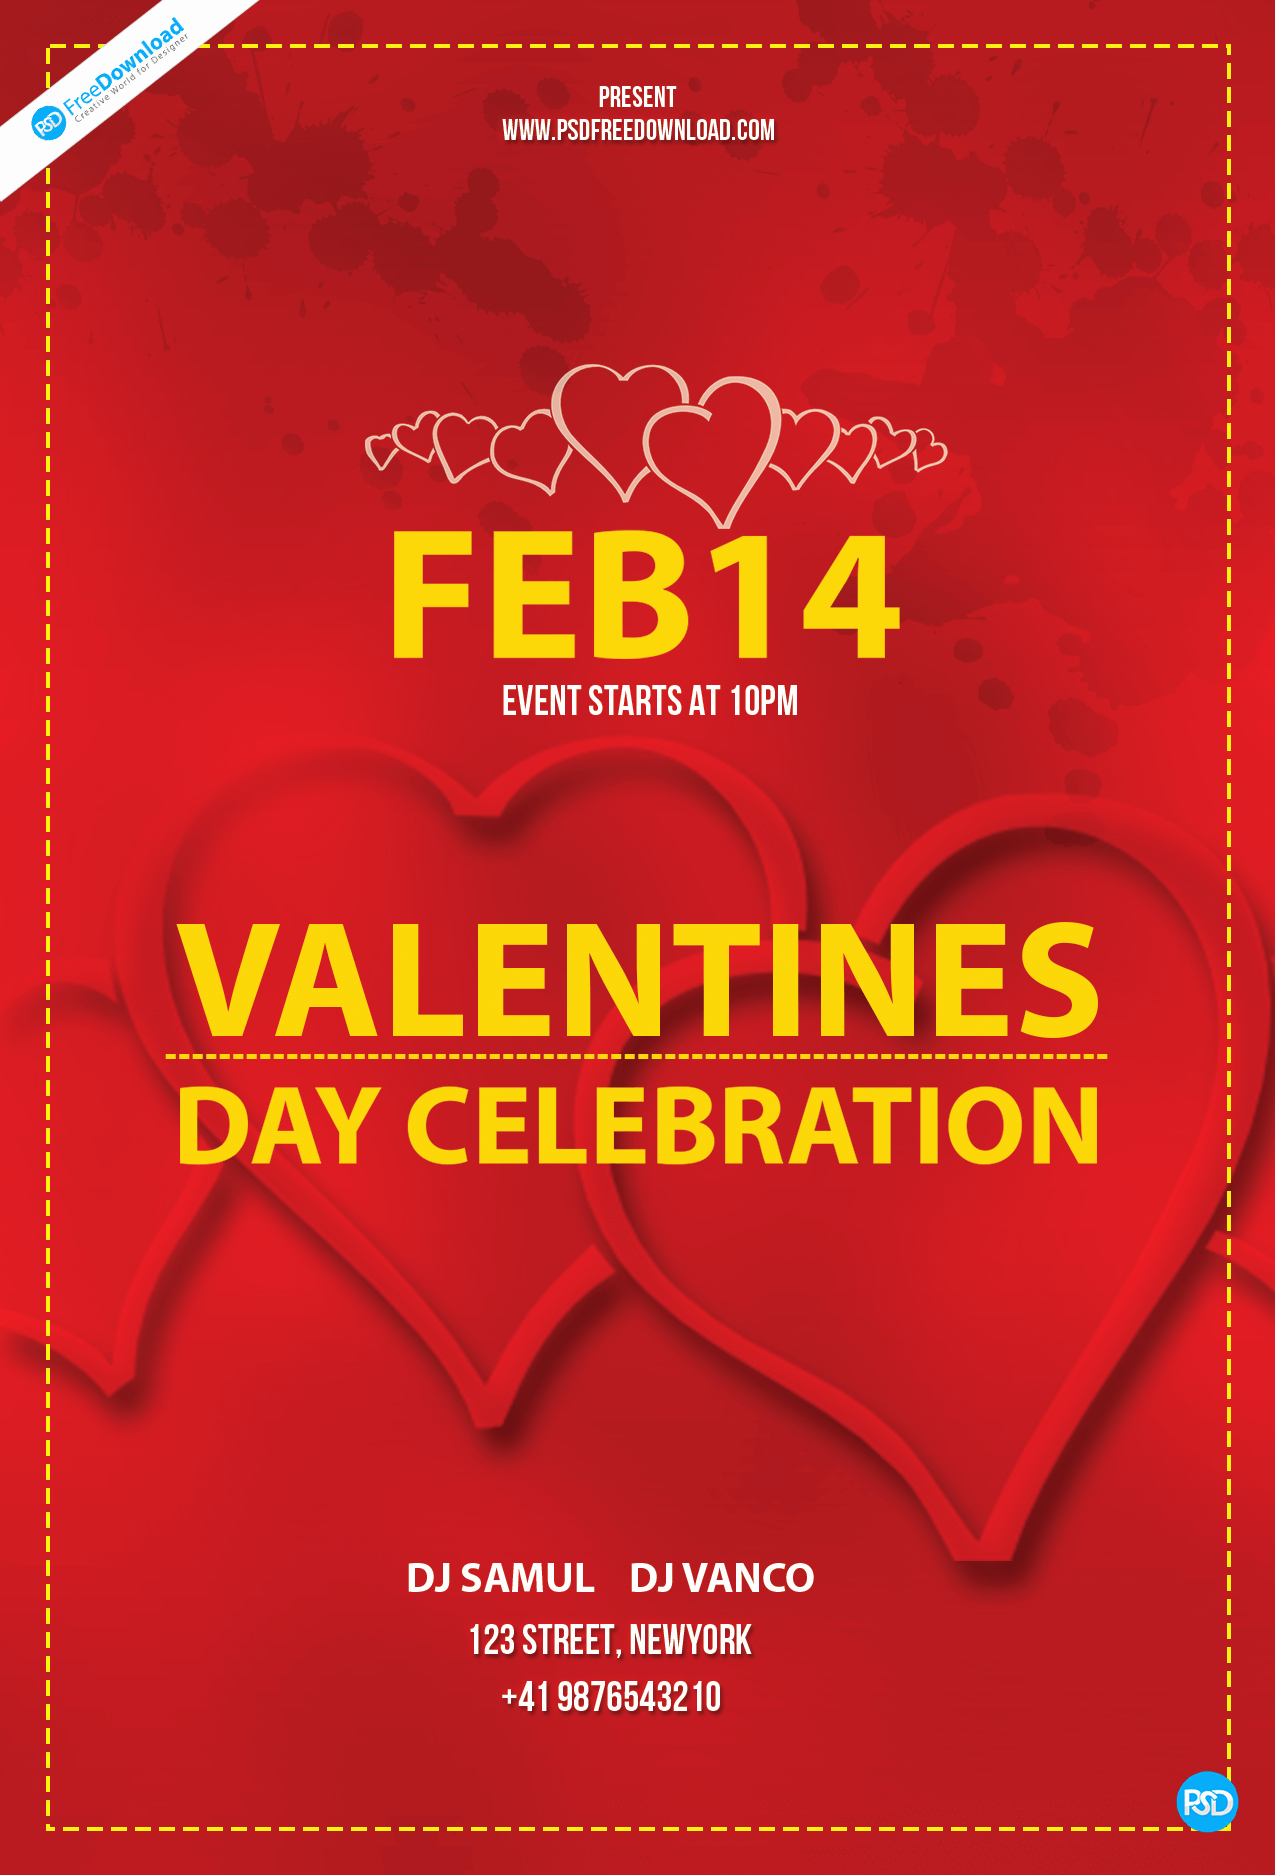 Flyer Templates Free Downloads Luxury Free Valentines Day Flyer Template